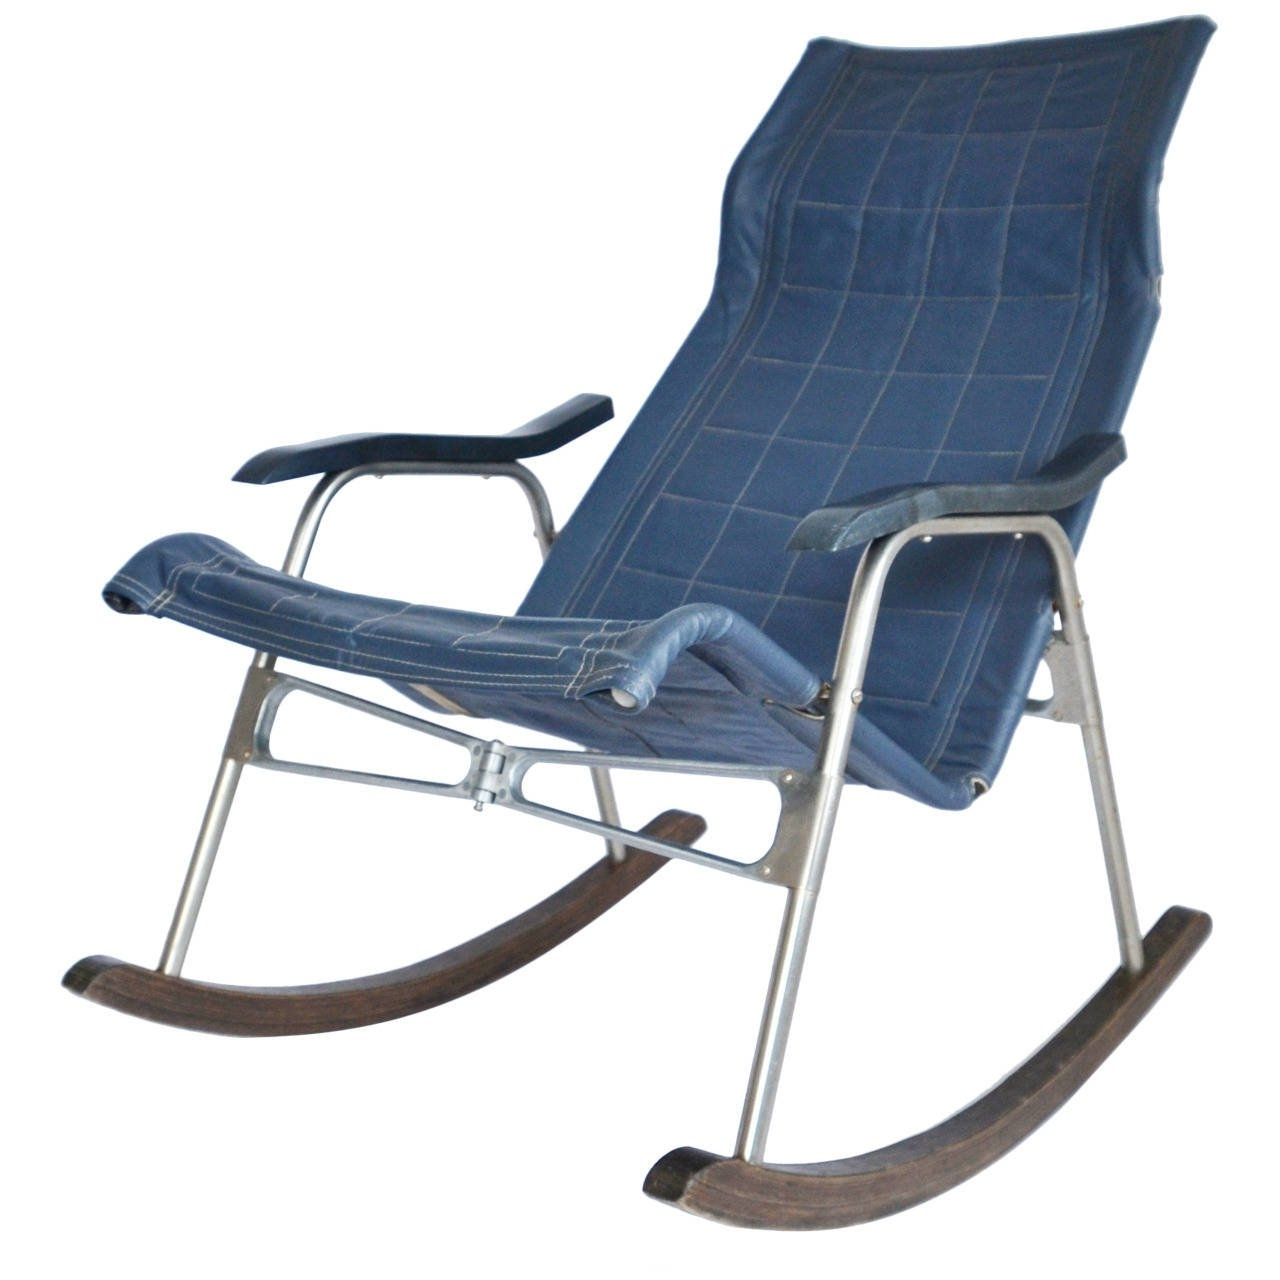 Folding Rocking Chairtakeshi Nii, Japan, 1950S For Sale At 1Stdibs Intended For 2018 Folding Rocking Chairs (View 11 of 20)